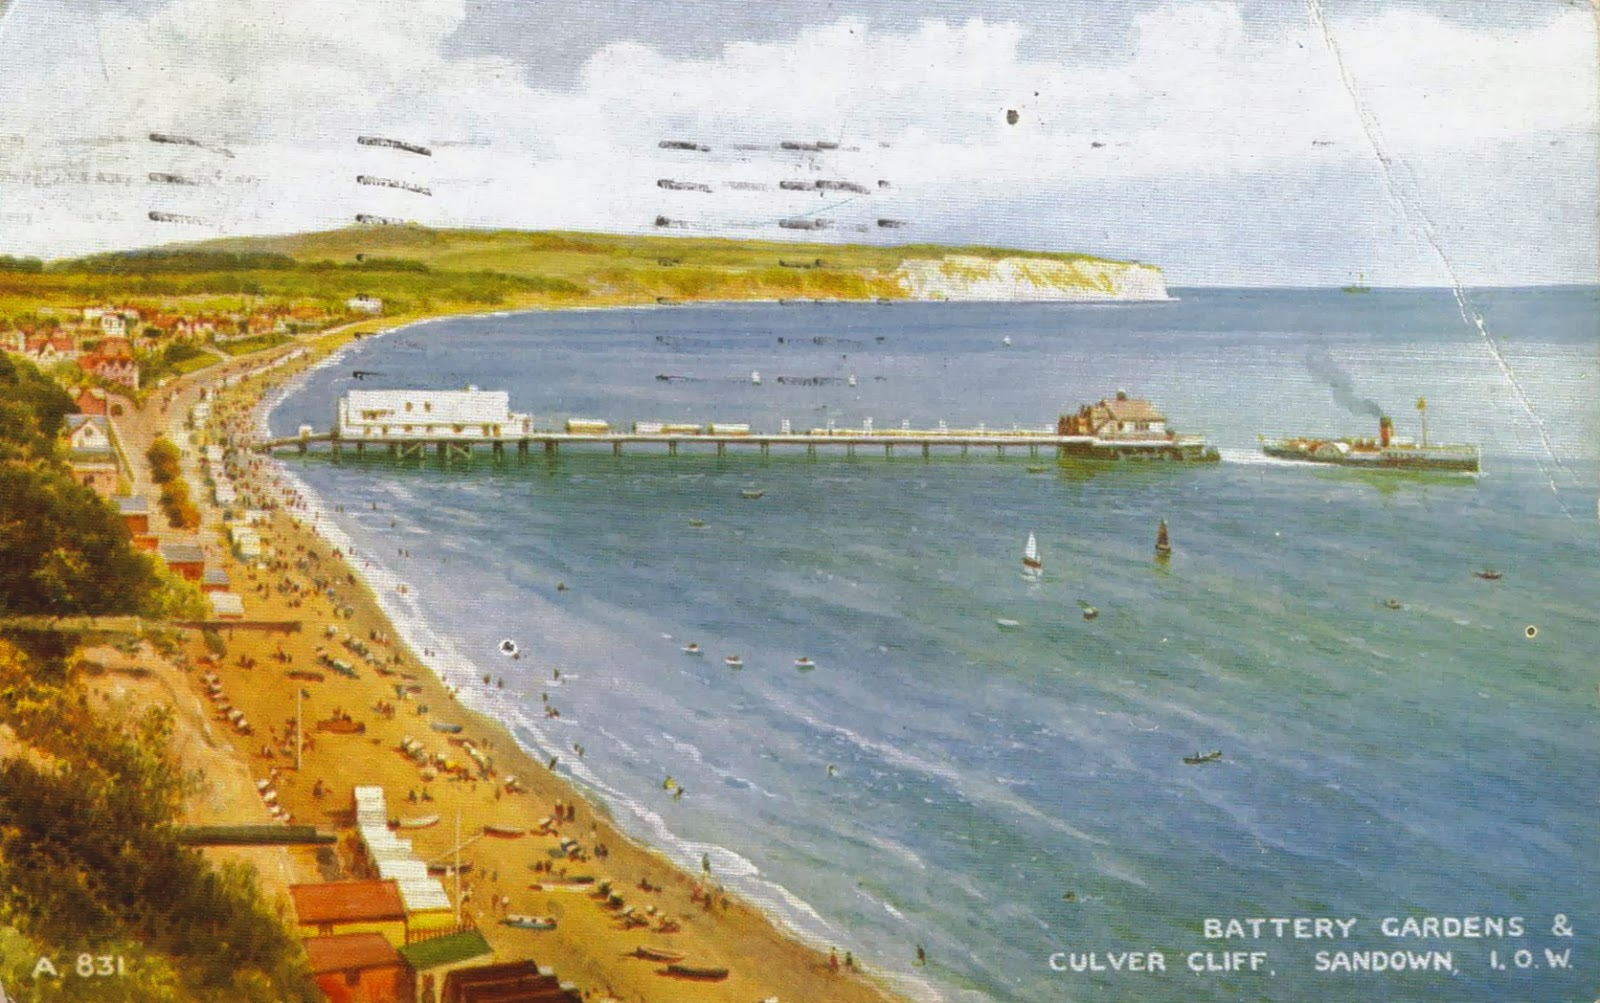 Battery Gardens & Culver Cliff, Sandown, I.O.W.